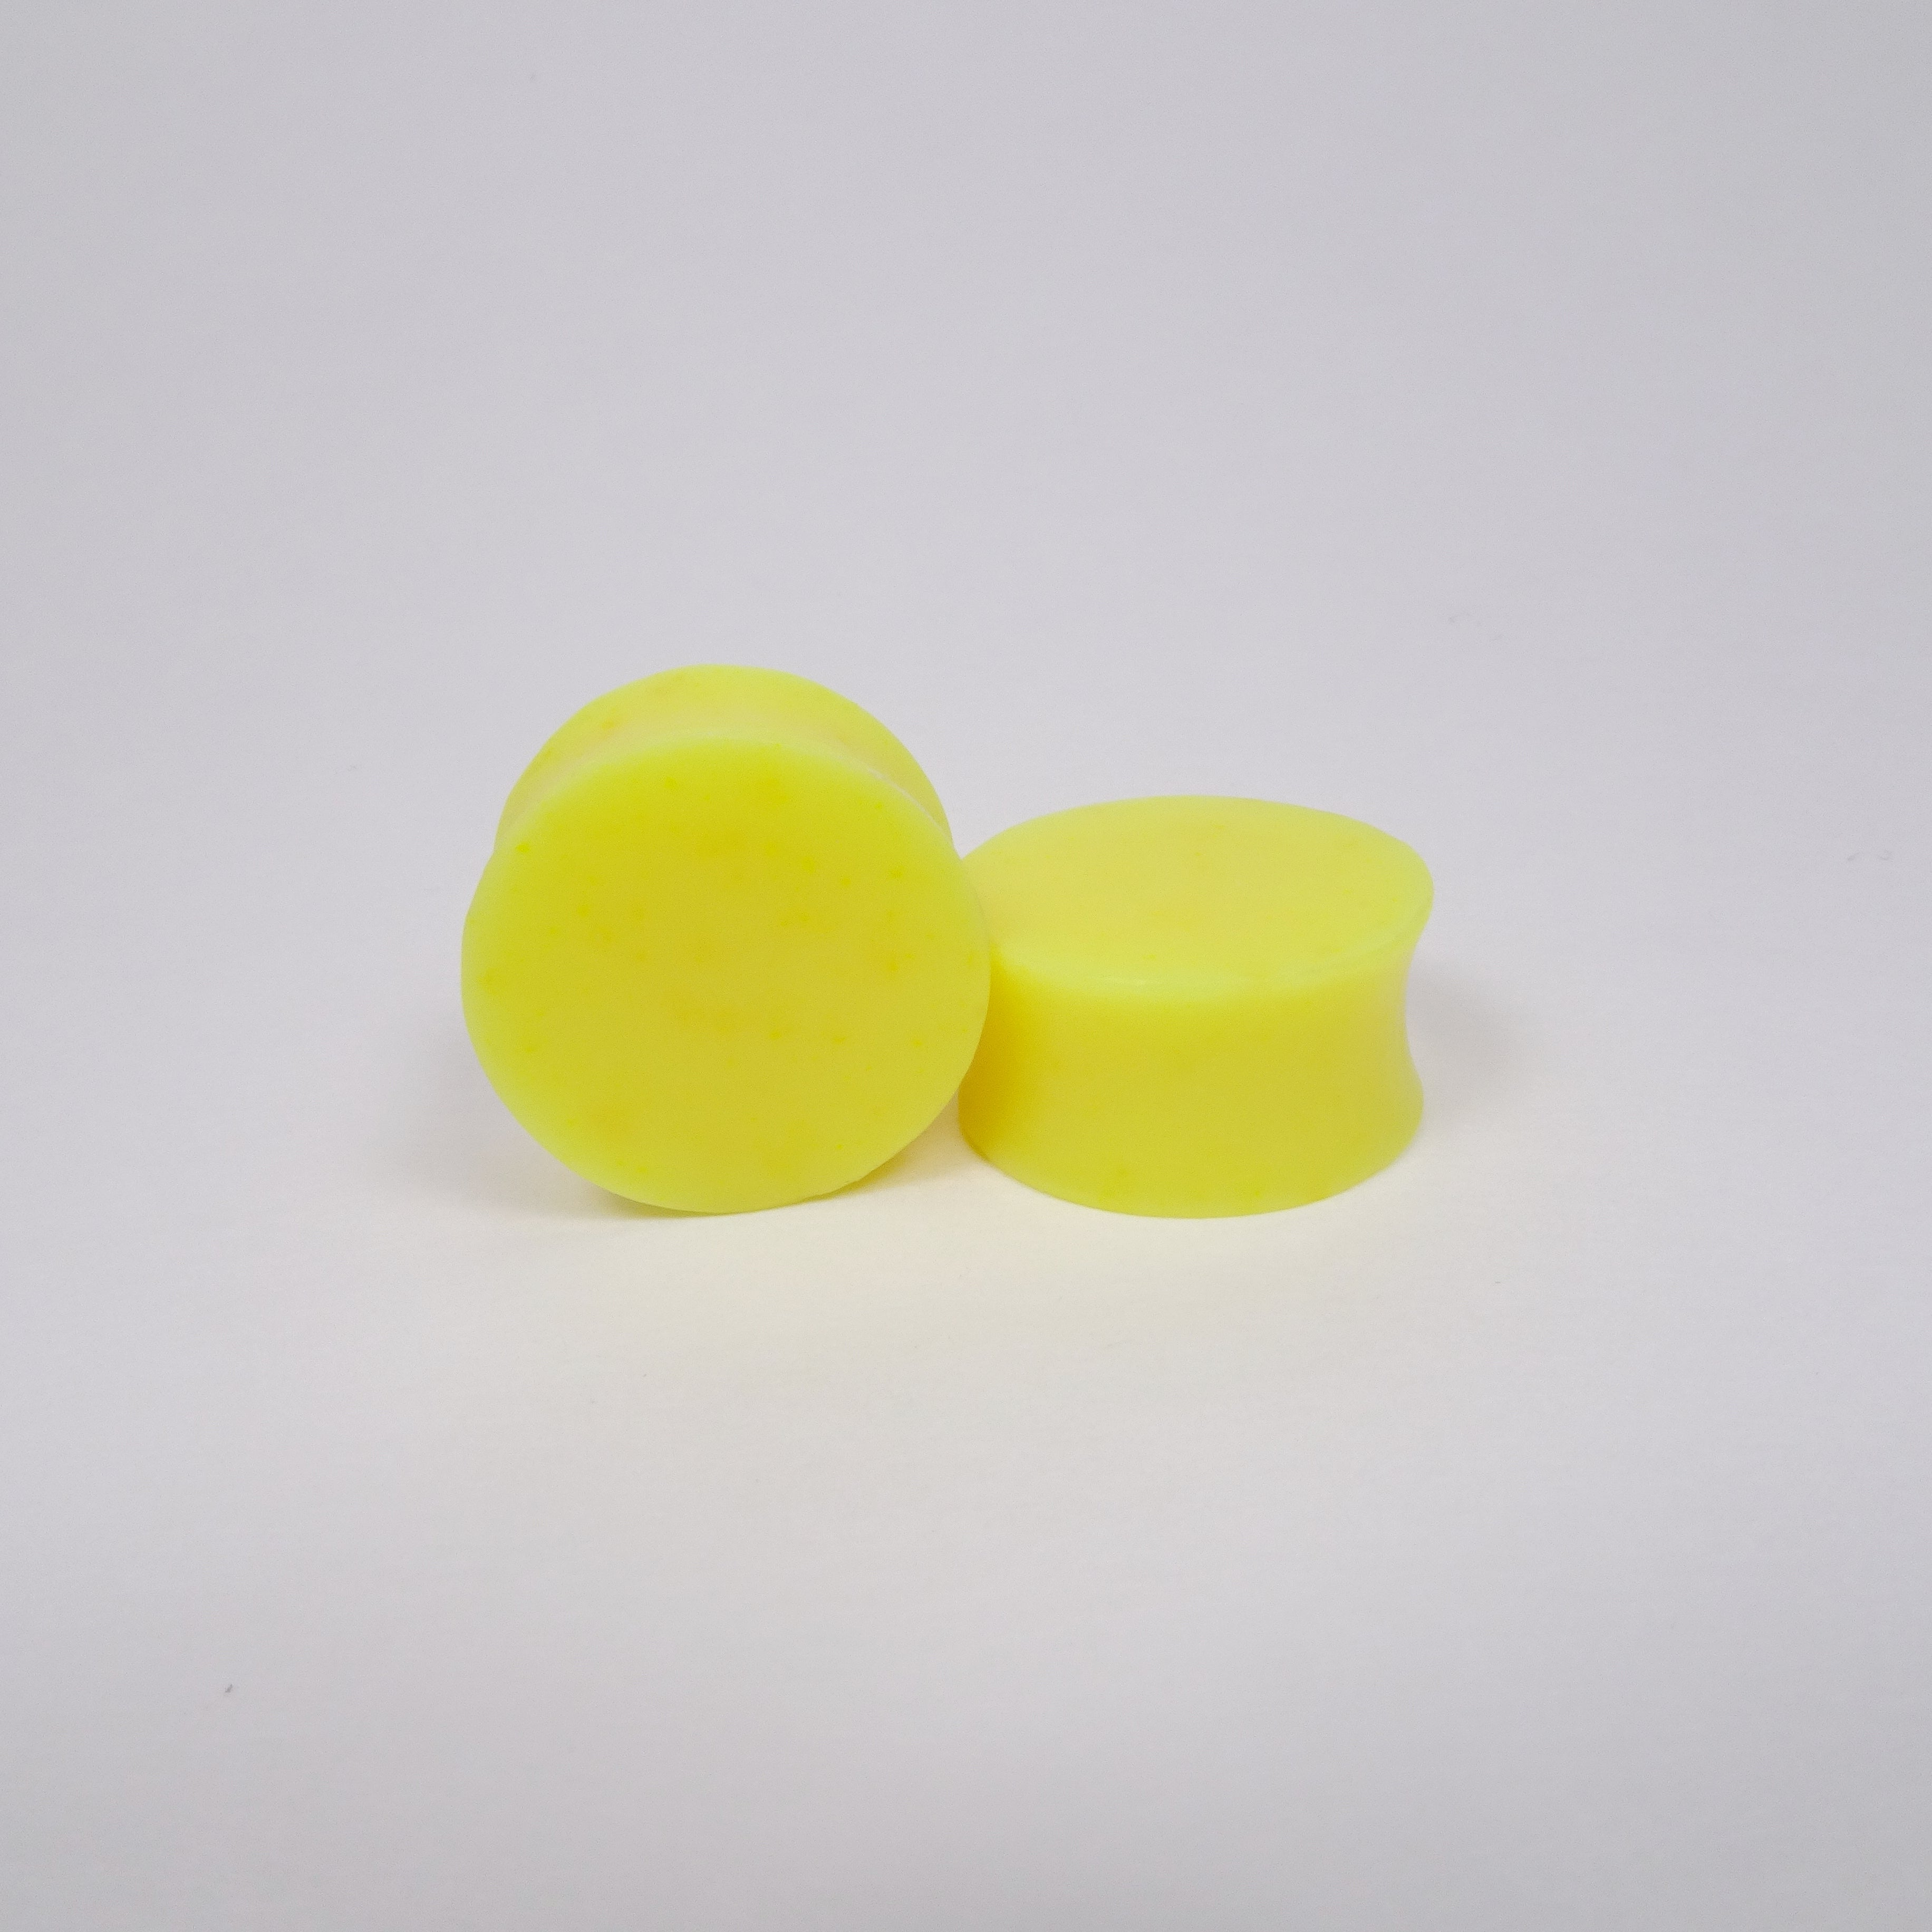 Neon Yellow Resin Double Flared Ear Plugs or Tunnels or Teardrops - Ear Gauges- Fluorescent Yellow - Art and Soule